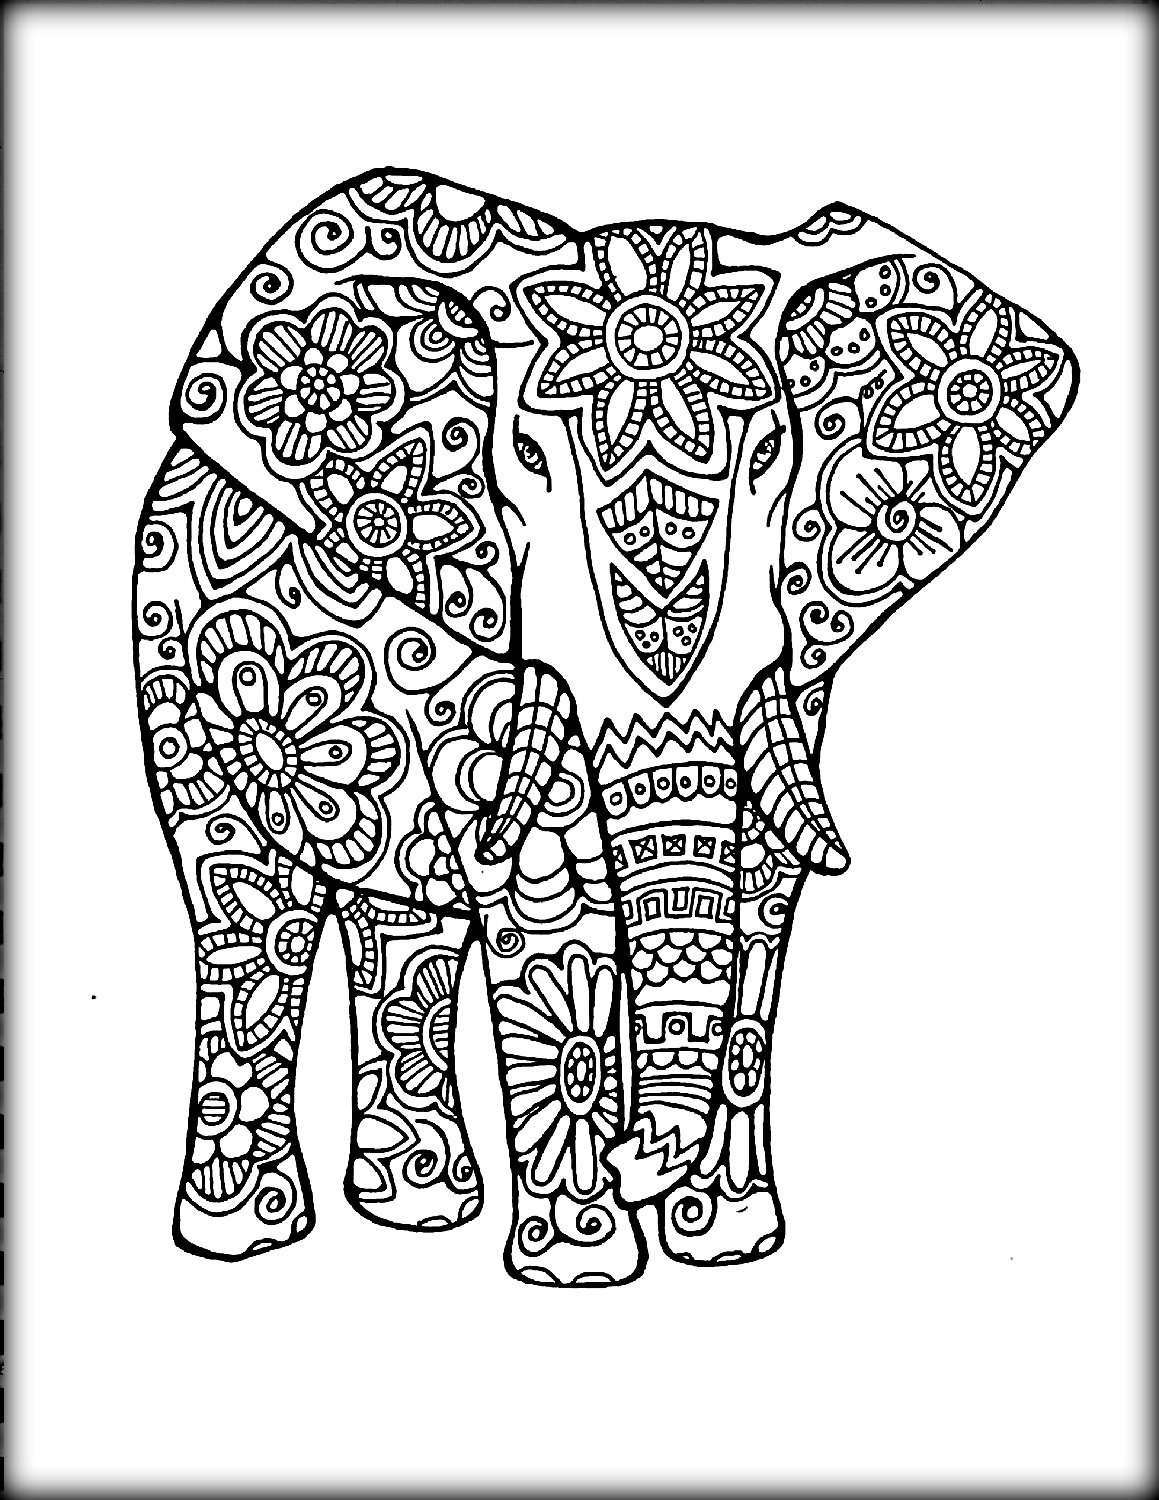 Elephant Design Drawing at GetDrawings.com | Free for personal use ...